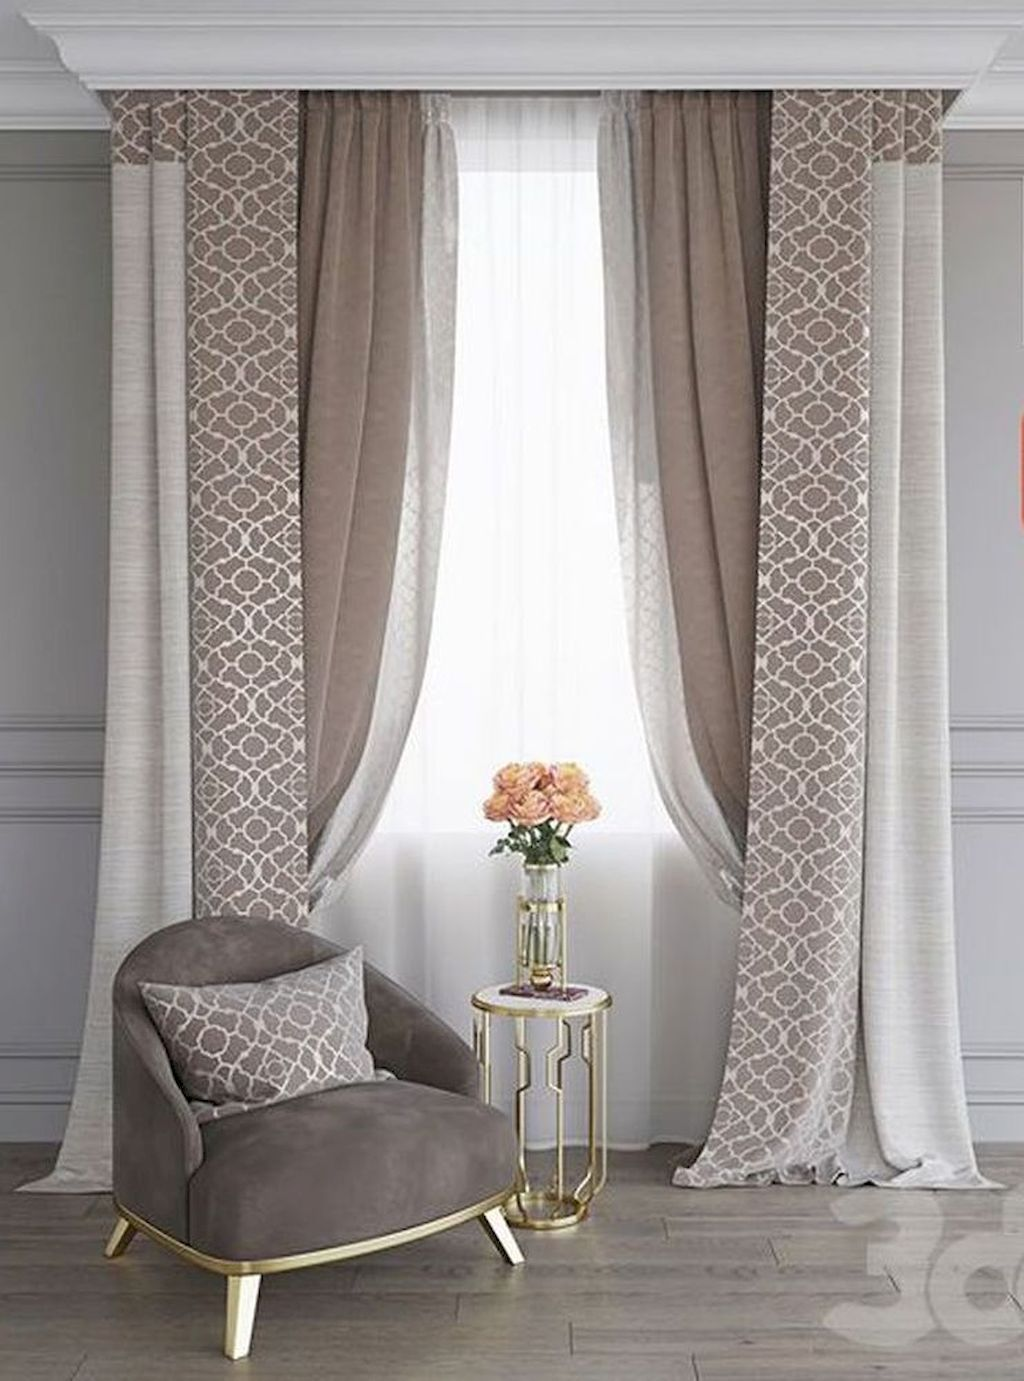 Trendy Design Curtains Can Change Your Residence Miraculously